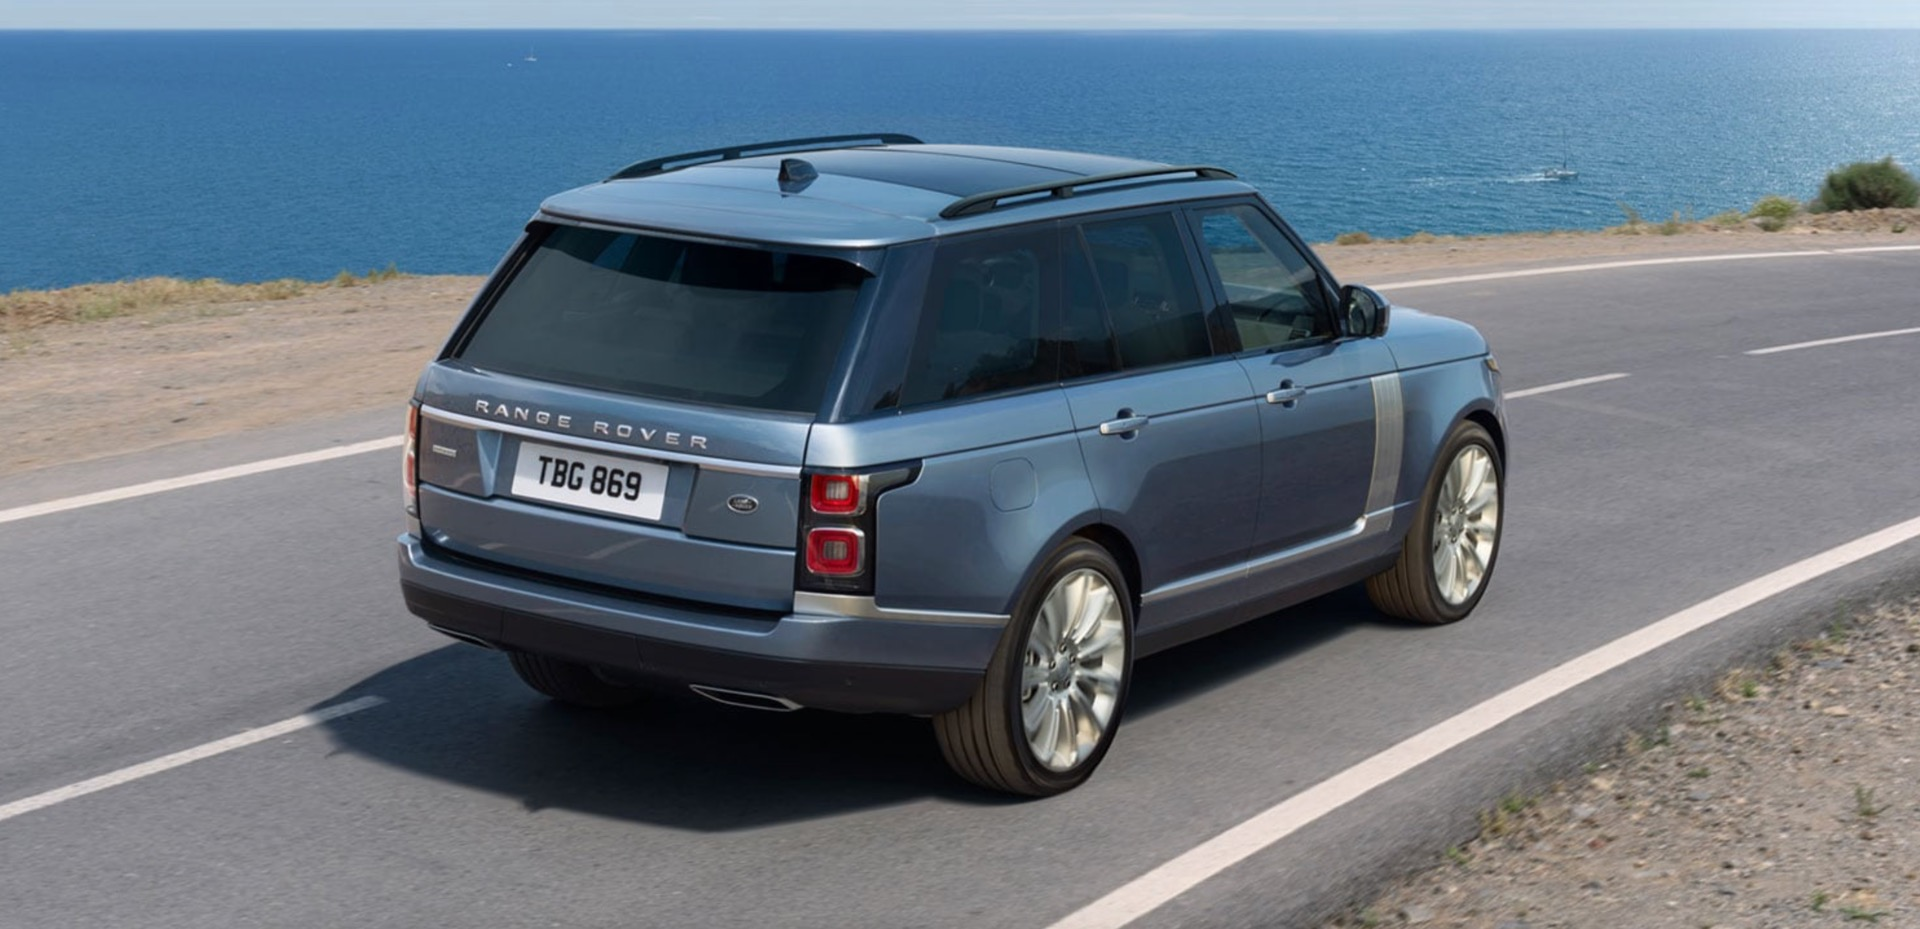 New-2020-Land-Rover-Range-Rover-HSE